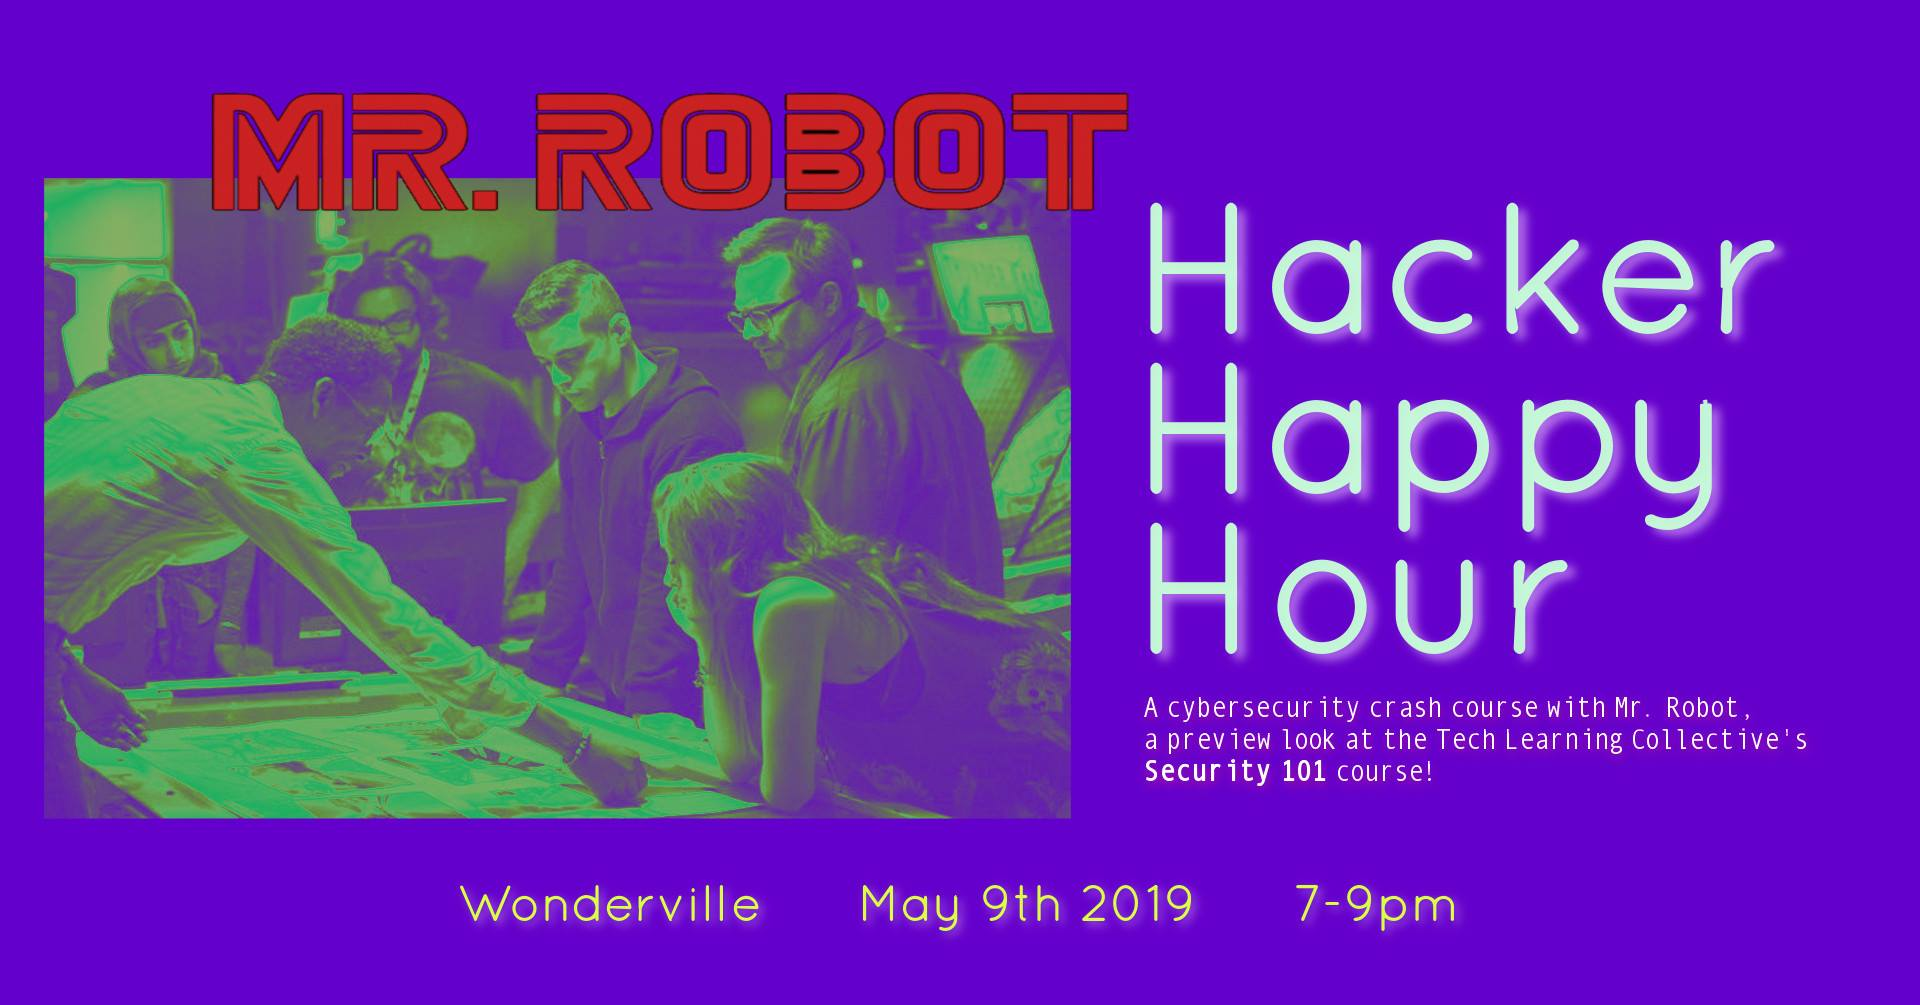 Mr. Robot Hacker Happy Hour - A Cybersecurity crash course with Mr. Robot, a preview look at the Tech Learning Collective's Security 101 Course!